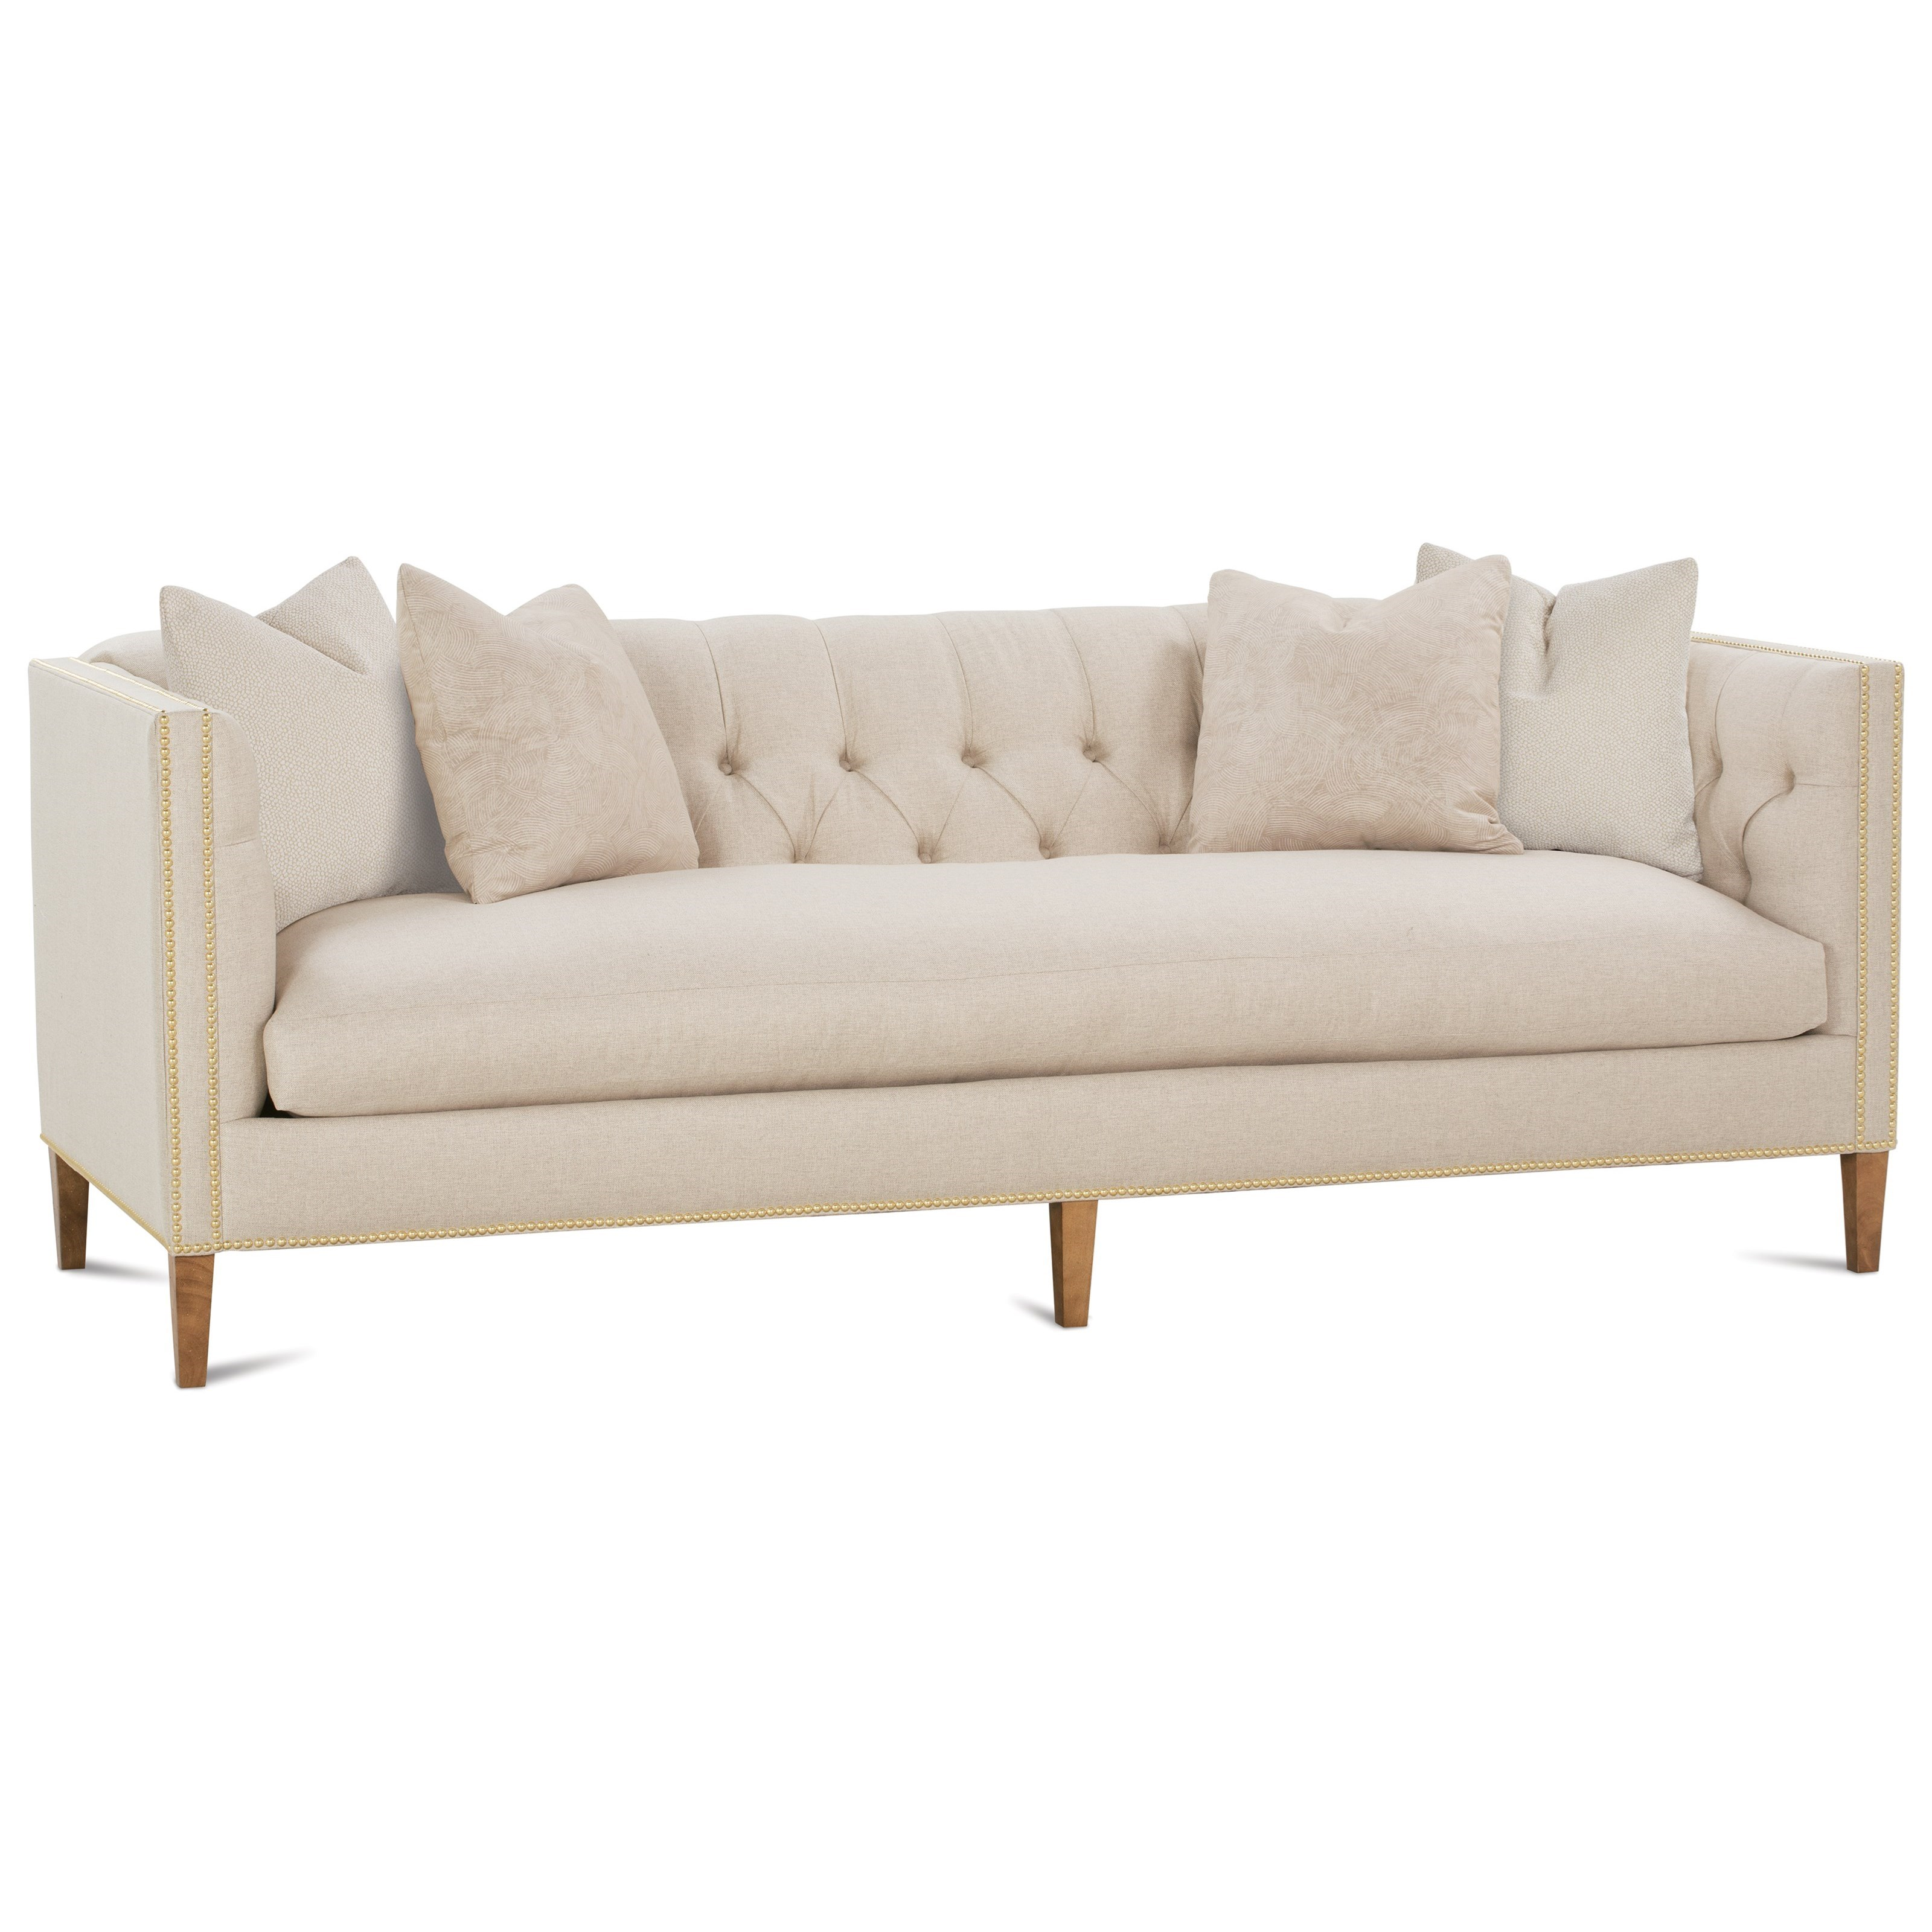 Brette Tuxedo Arm Sofa by Robin Bruce at Saugerties Furniture Mart